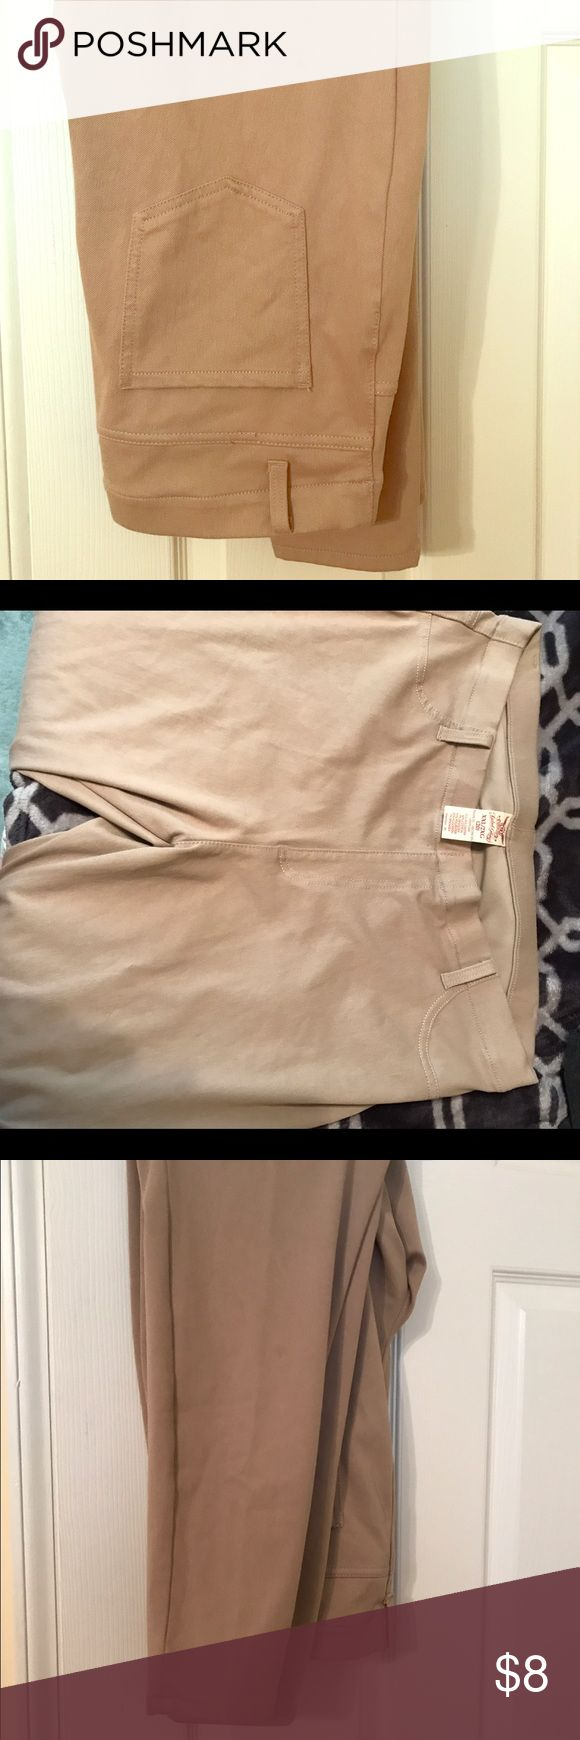 2XL Khaki Jeggings BNWOT Brand new without tags khaki jeggings from Faded Glory. Real pockets and fit like skinny jeans. Faded Glory Pants Skinny